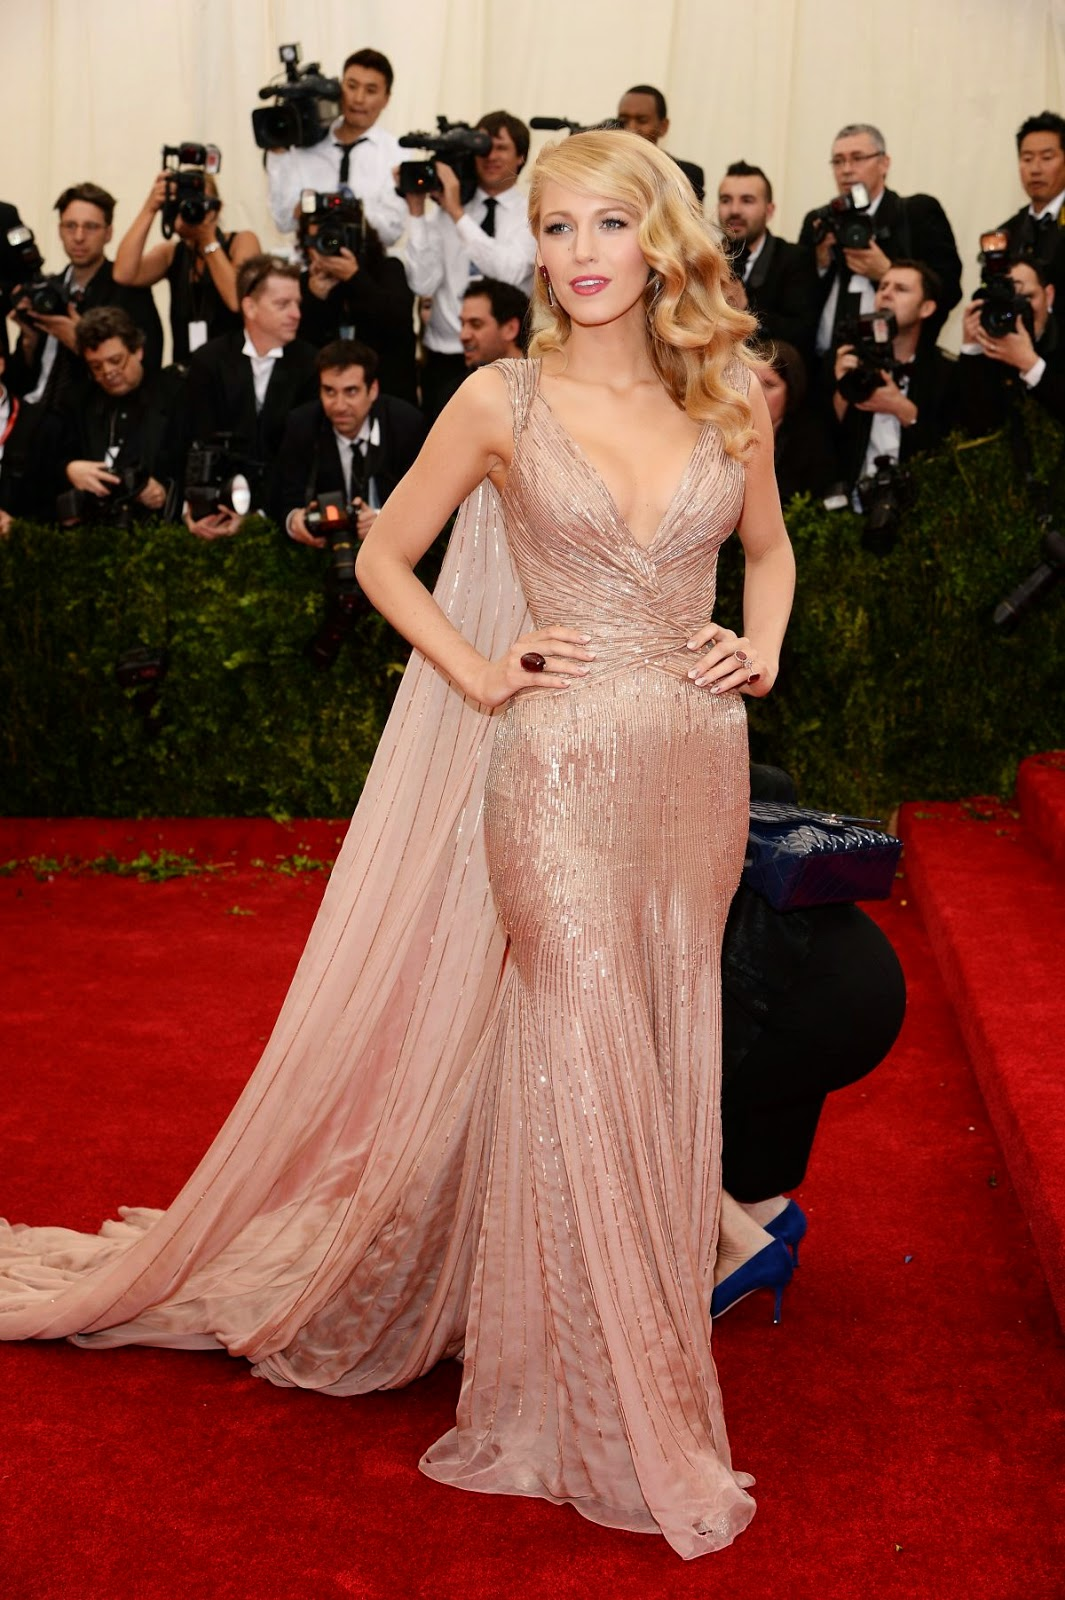 Blake Lively Channels Old Hollywood Glamour In Gucci At